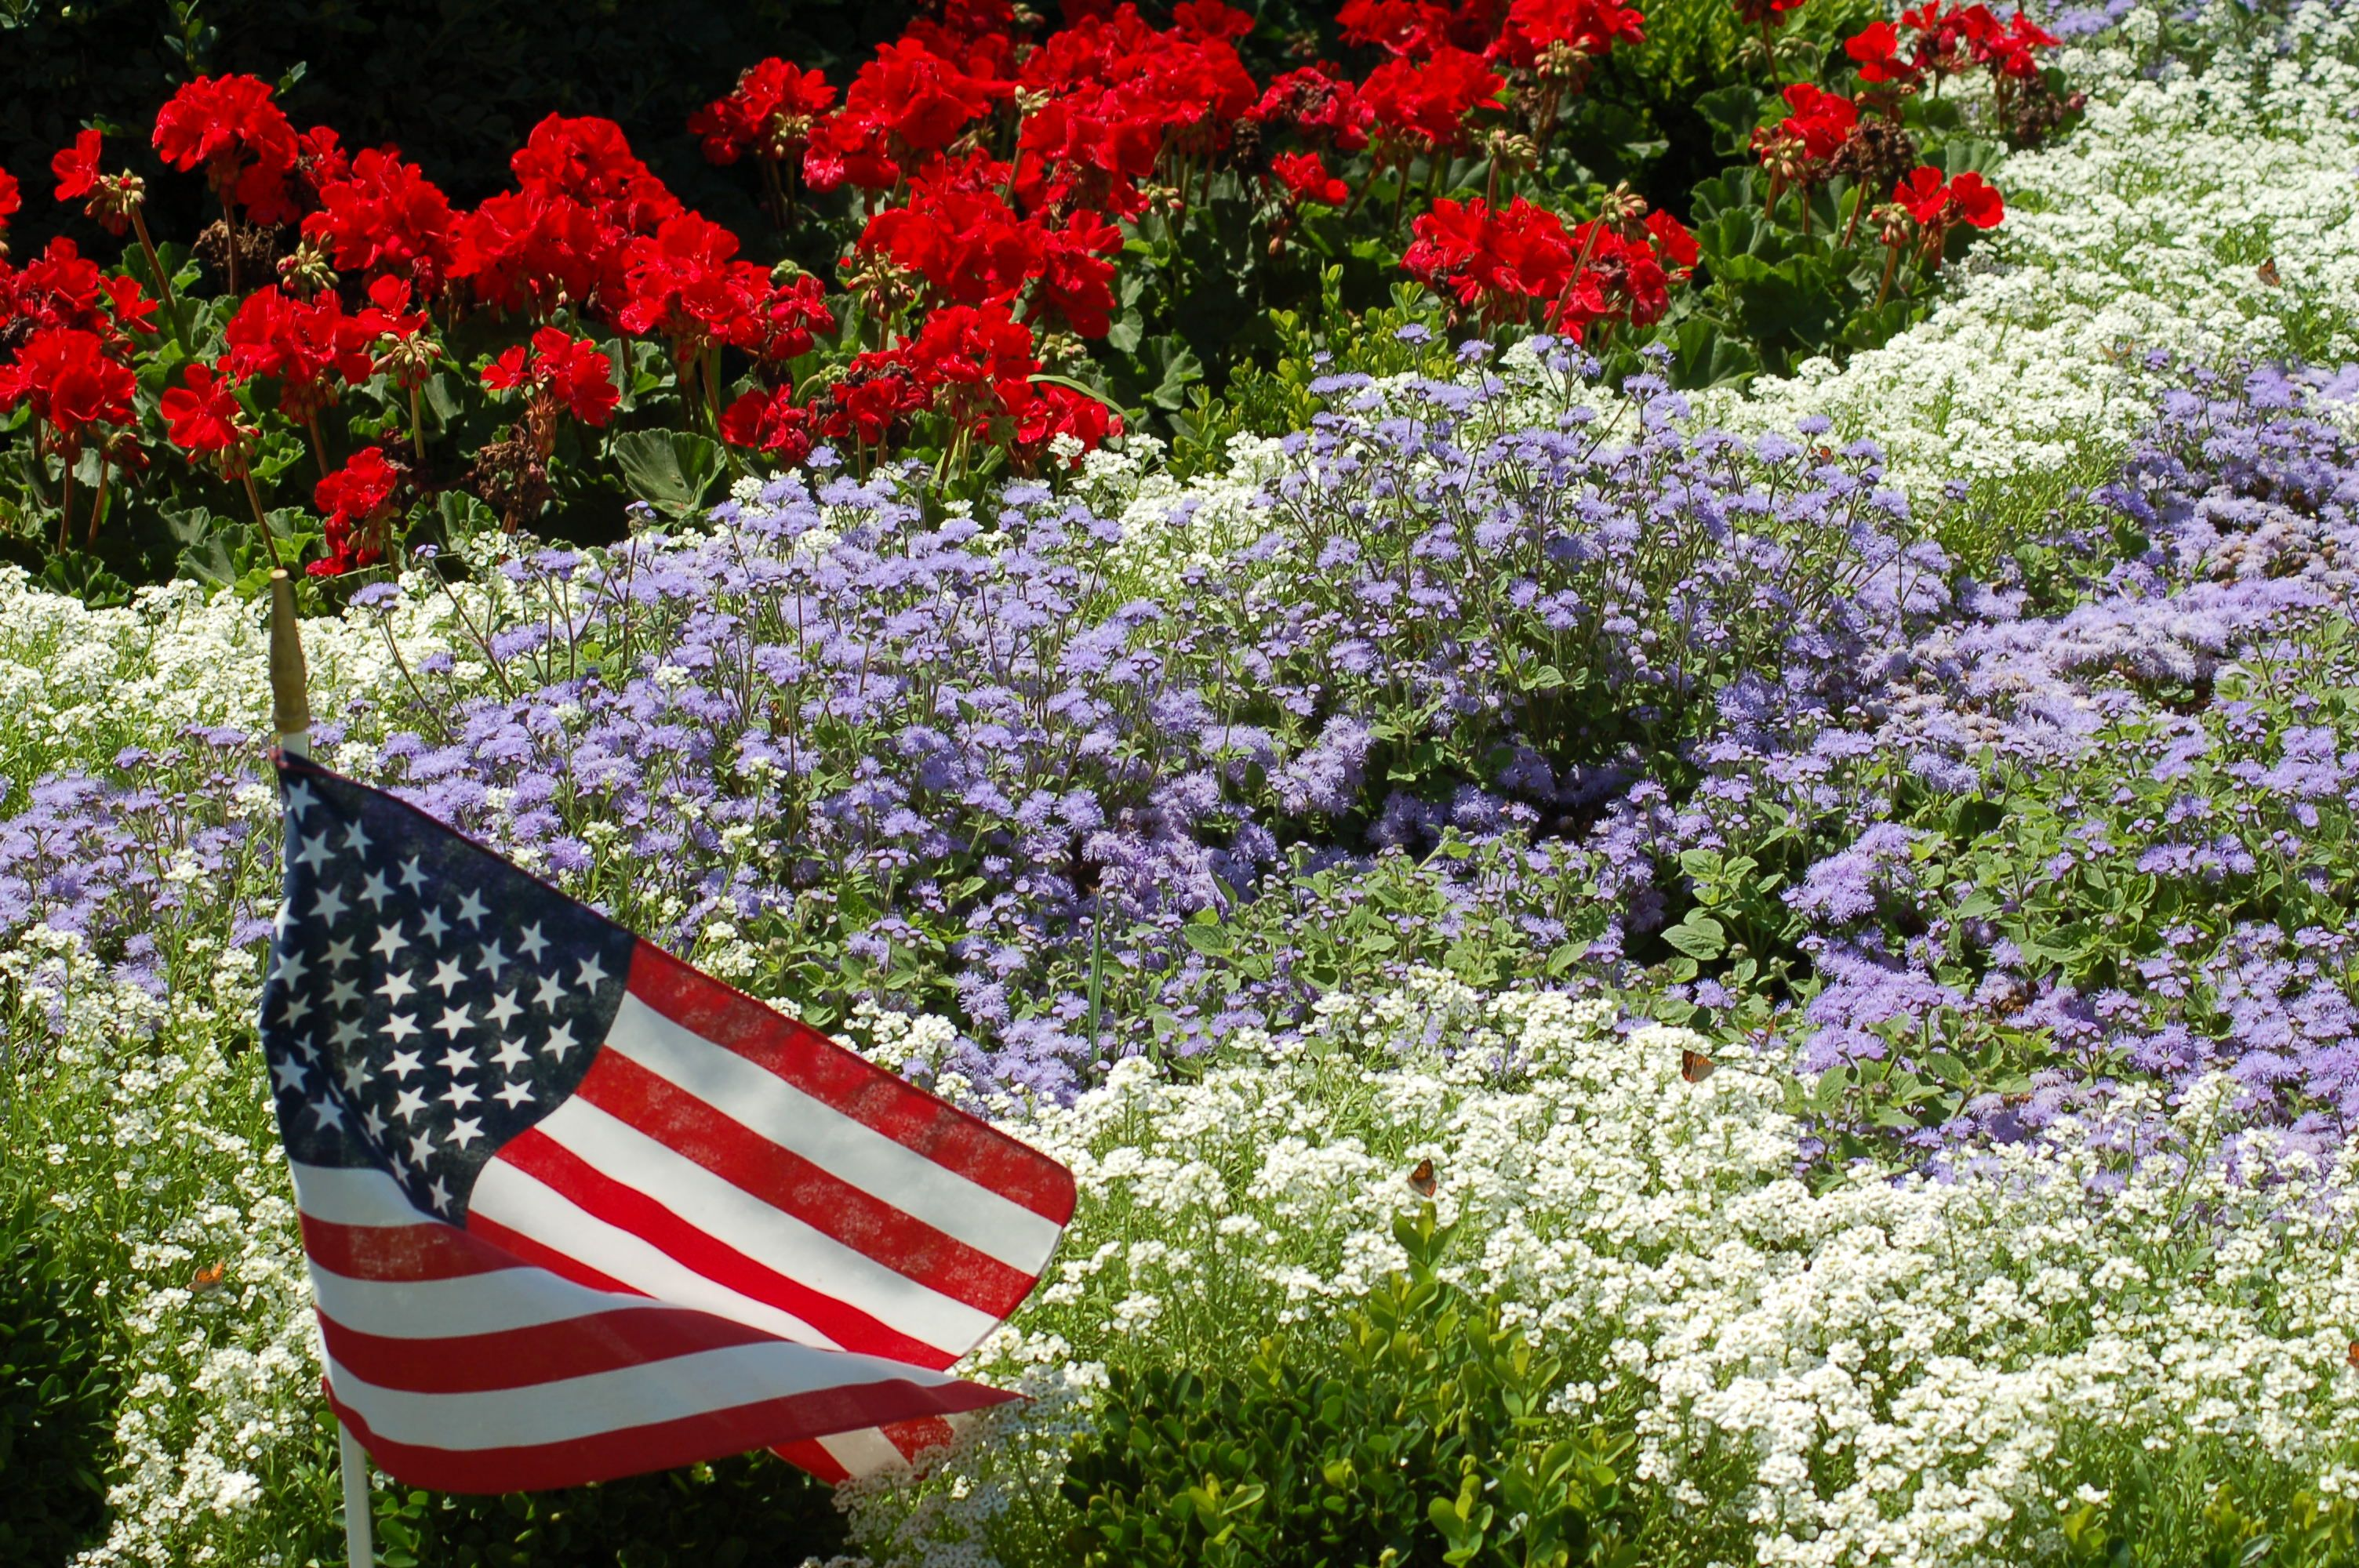 "On July 4th, we Americans should wish each other ""Happy Independence Day!"" rather than ""Happy July 4th!"" Why? Because it's not the date that we're celebrating, but the event: our declaring of independence. This picture shows a patriotic planting of red geraniums, white alyssum, and blue ageratum. Need more ideas for such plantings? See http://landscaping.about.com/od/holidayplants1/tp/red-white-blue-flowers.htm"